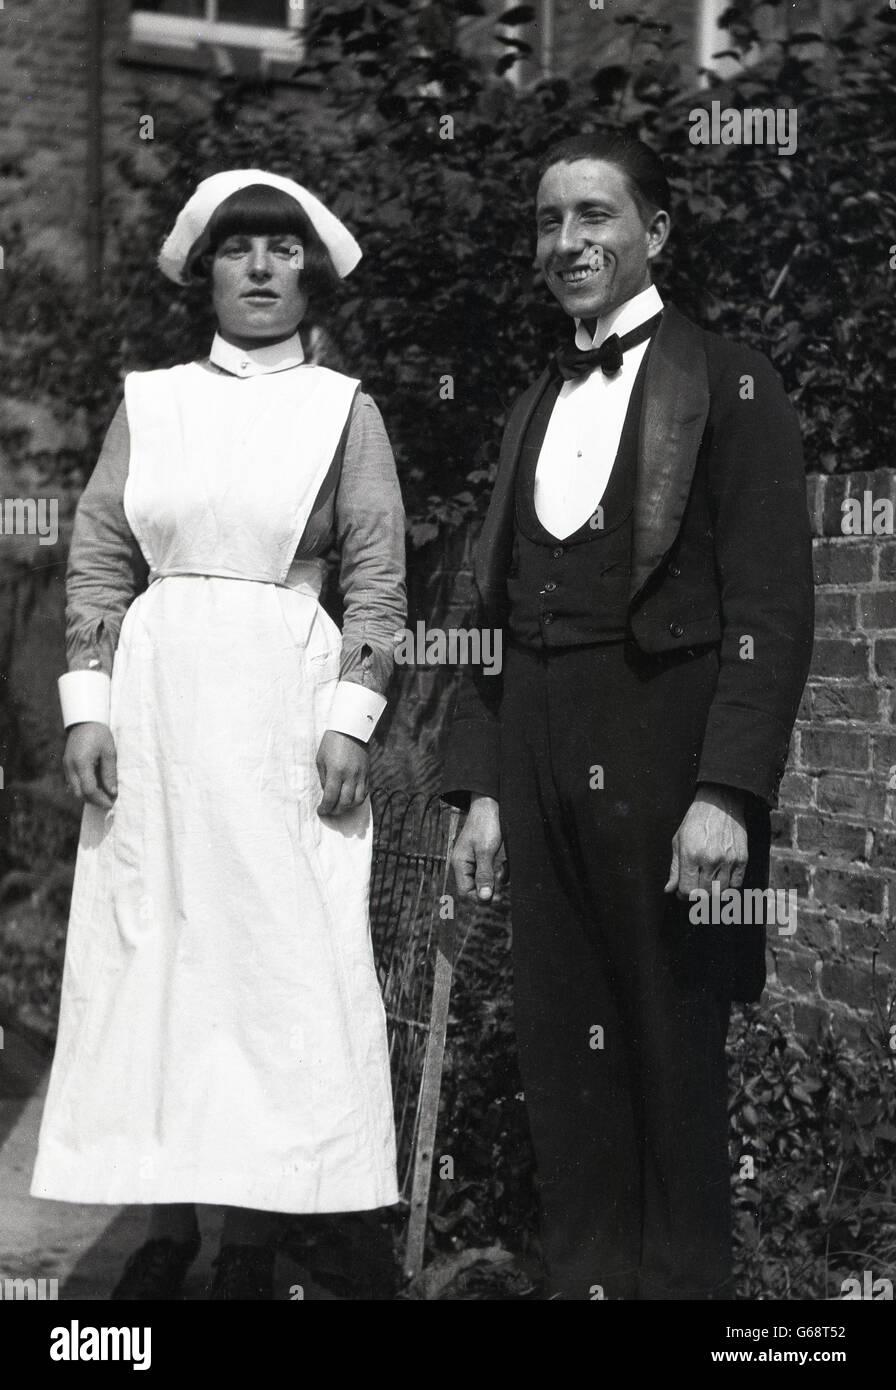 1930s, historical, Butler of a household with female housekeeper outside, possibly a live-in couple. - Stock Image